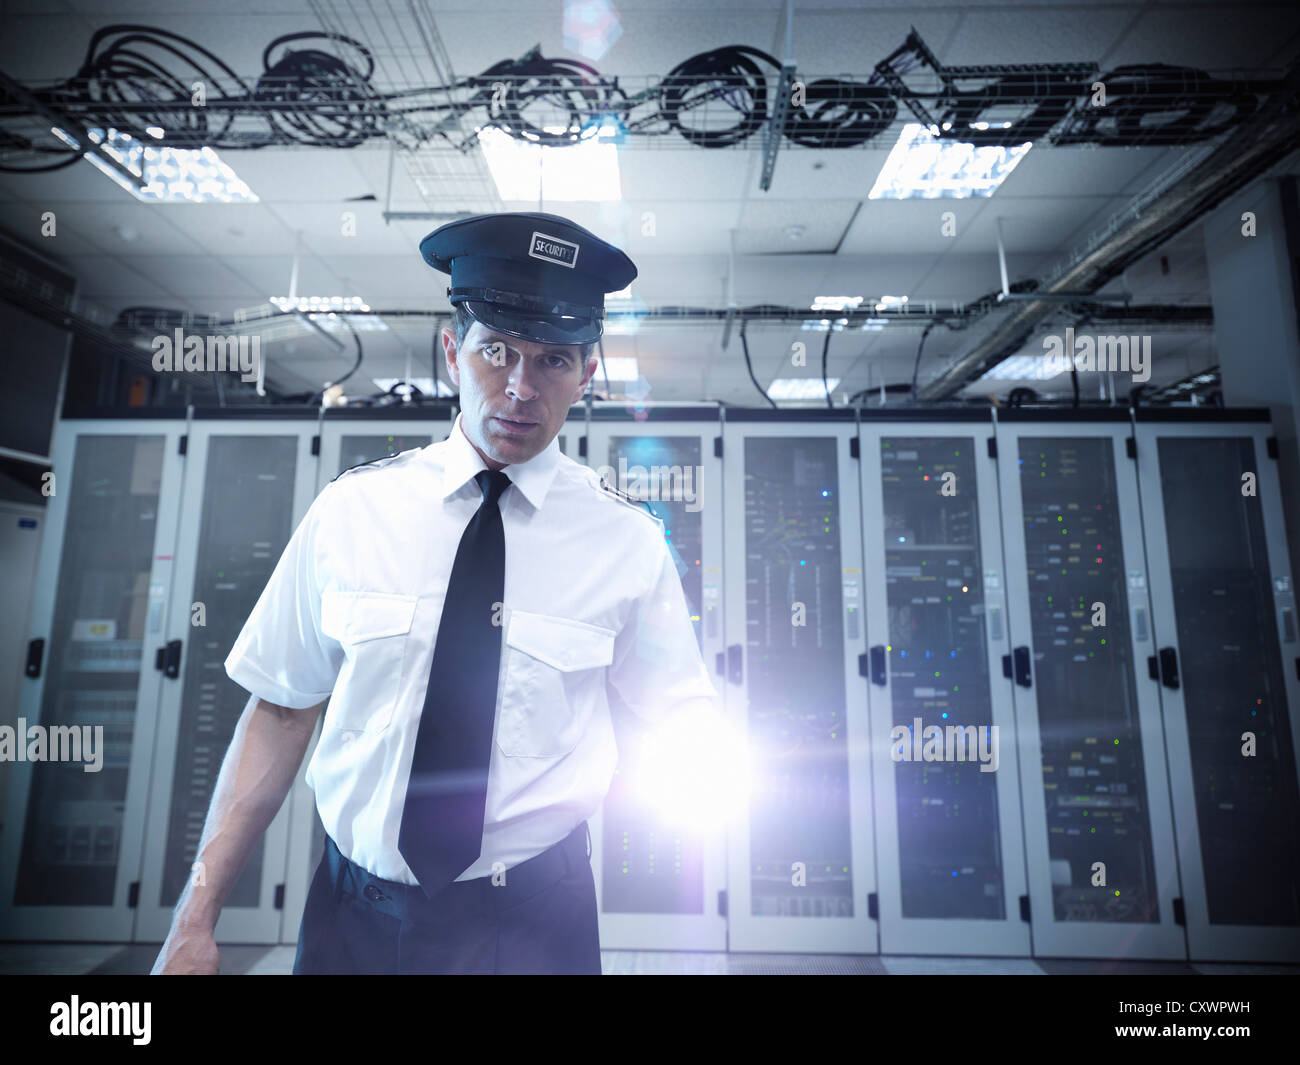 Security guard standing in server room Stock Photo